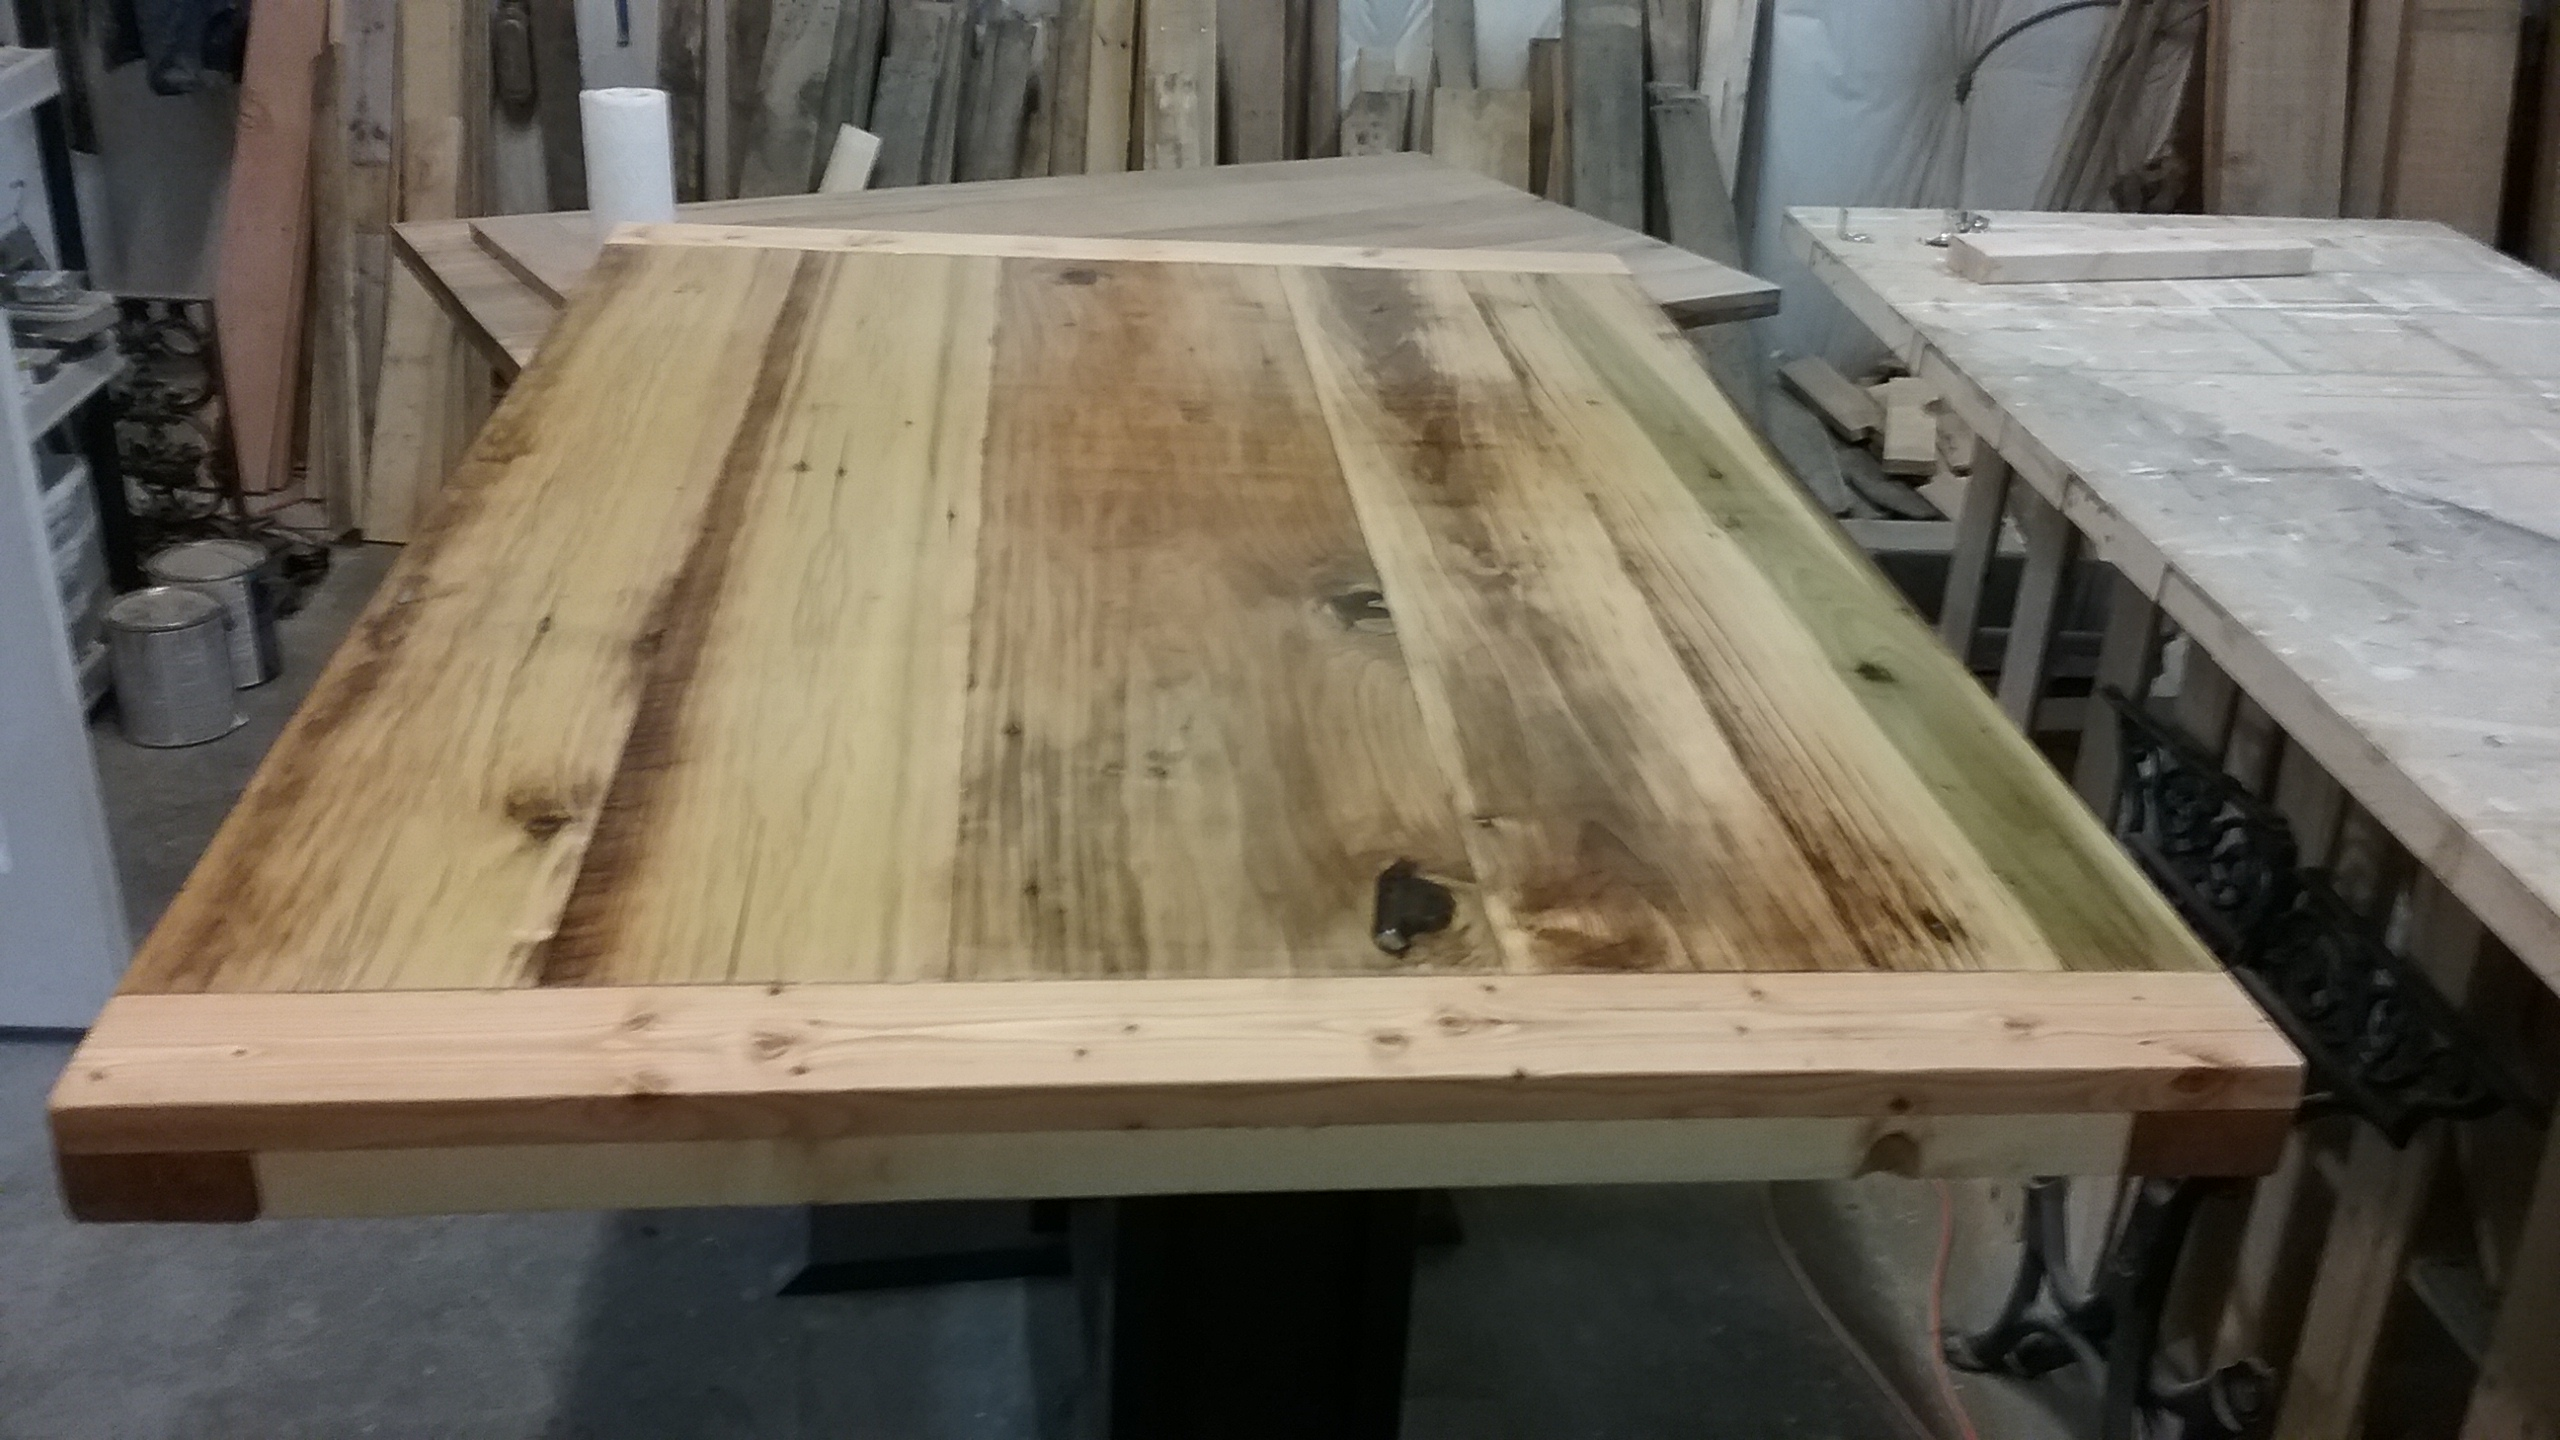 Bar Height Table Of Poplar 325 I Found Some Nice Boards That Came Off A Barn The Wood Had Several Diffe Hues So After Planed It Down